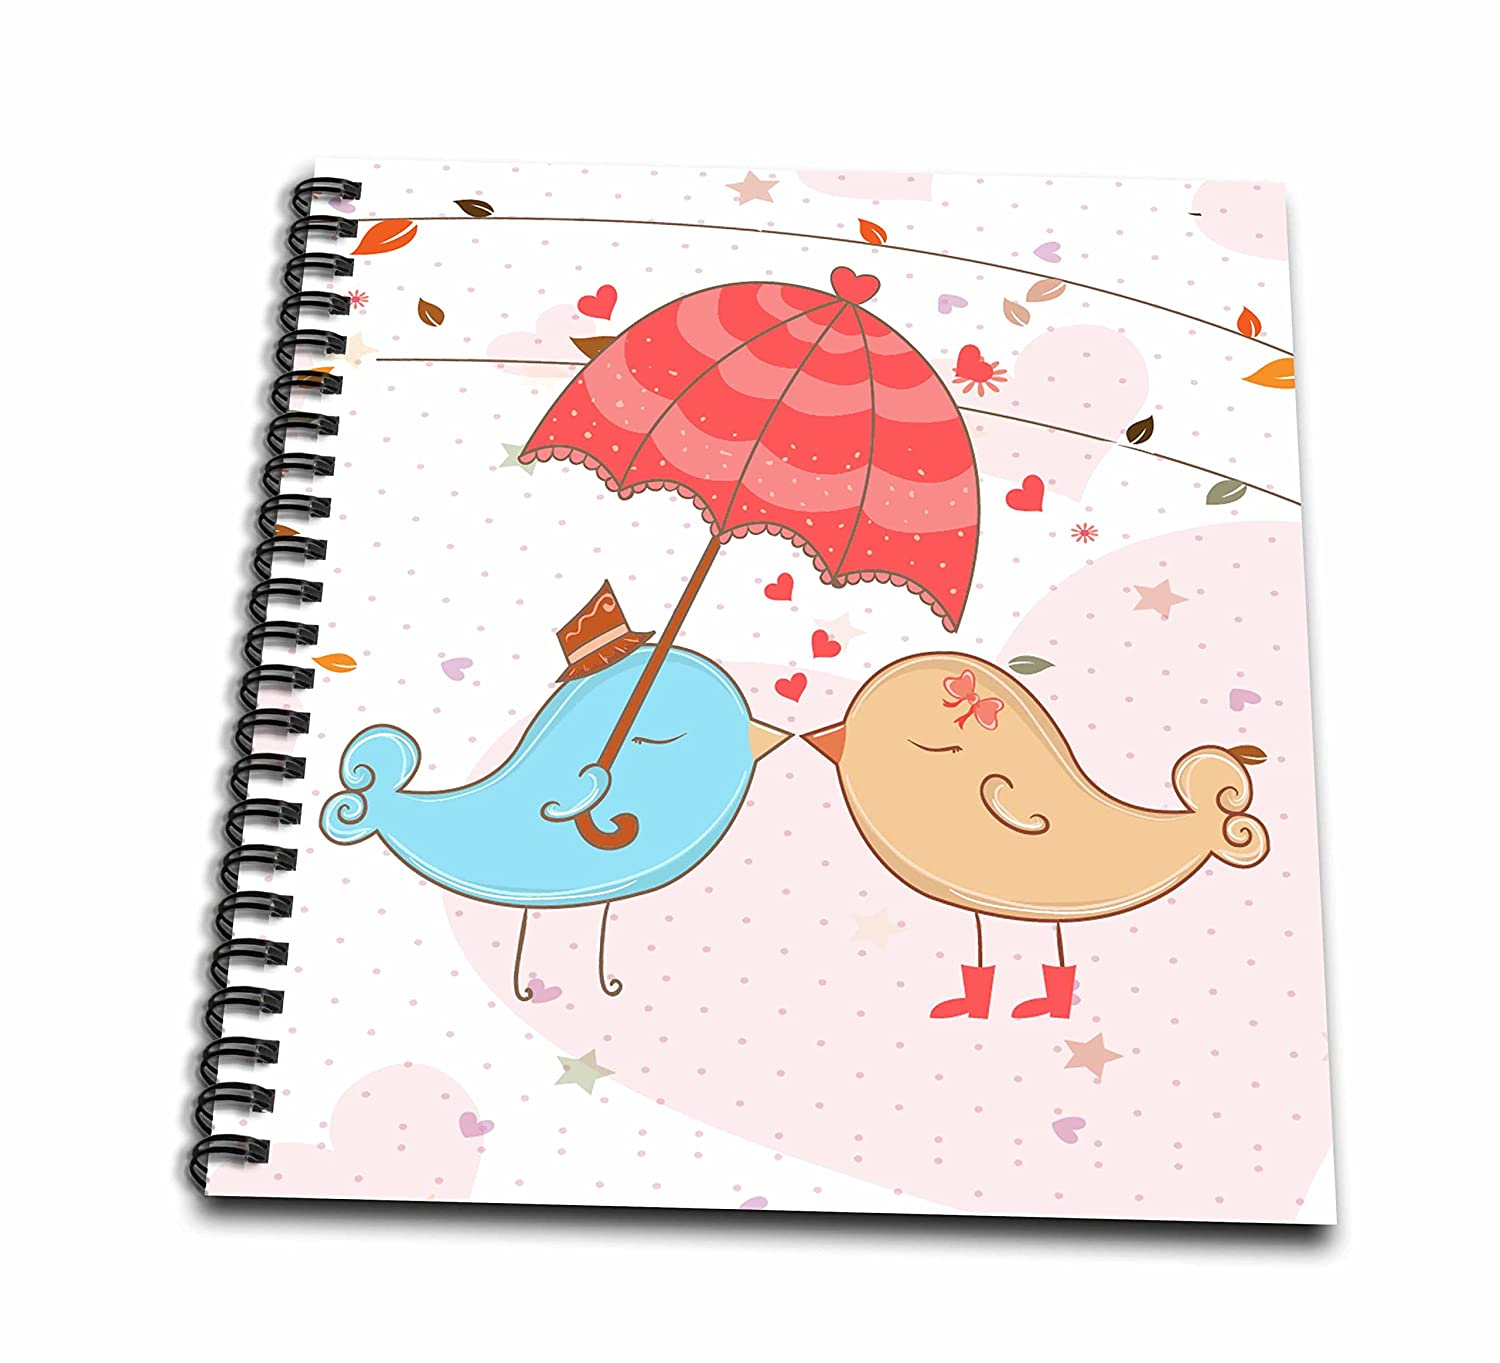 (12x12 memory book) - Dooni Designs Valentines Day and Love Designs - Cute Valentine Love Birds Kissing Under Umbrella Vector Cartoon - Drawing Book 12 by 12-Inch  B00CKZ113I